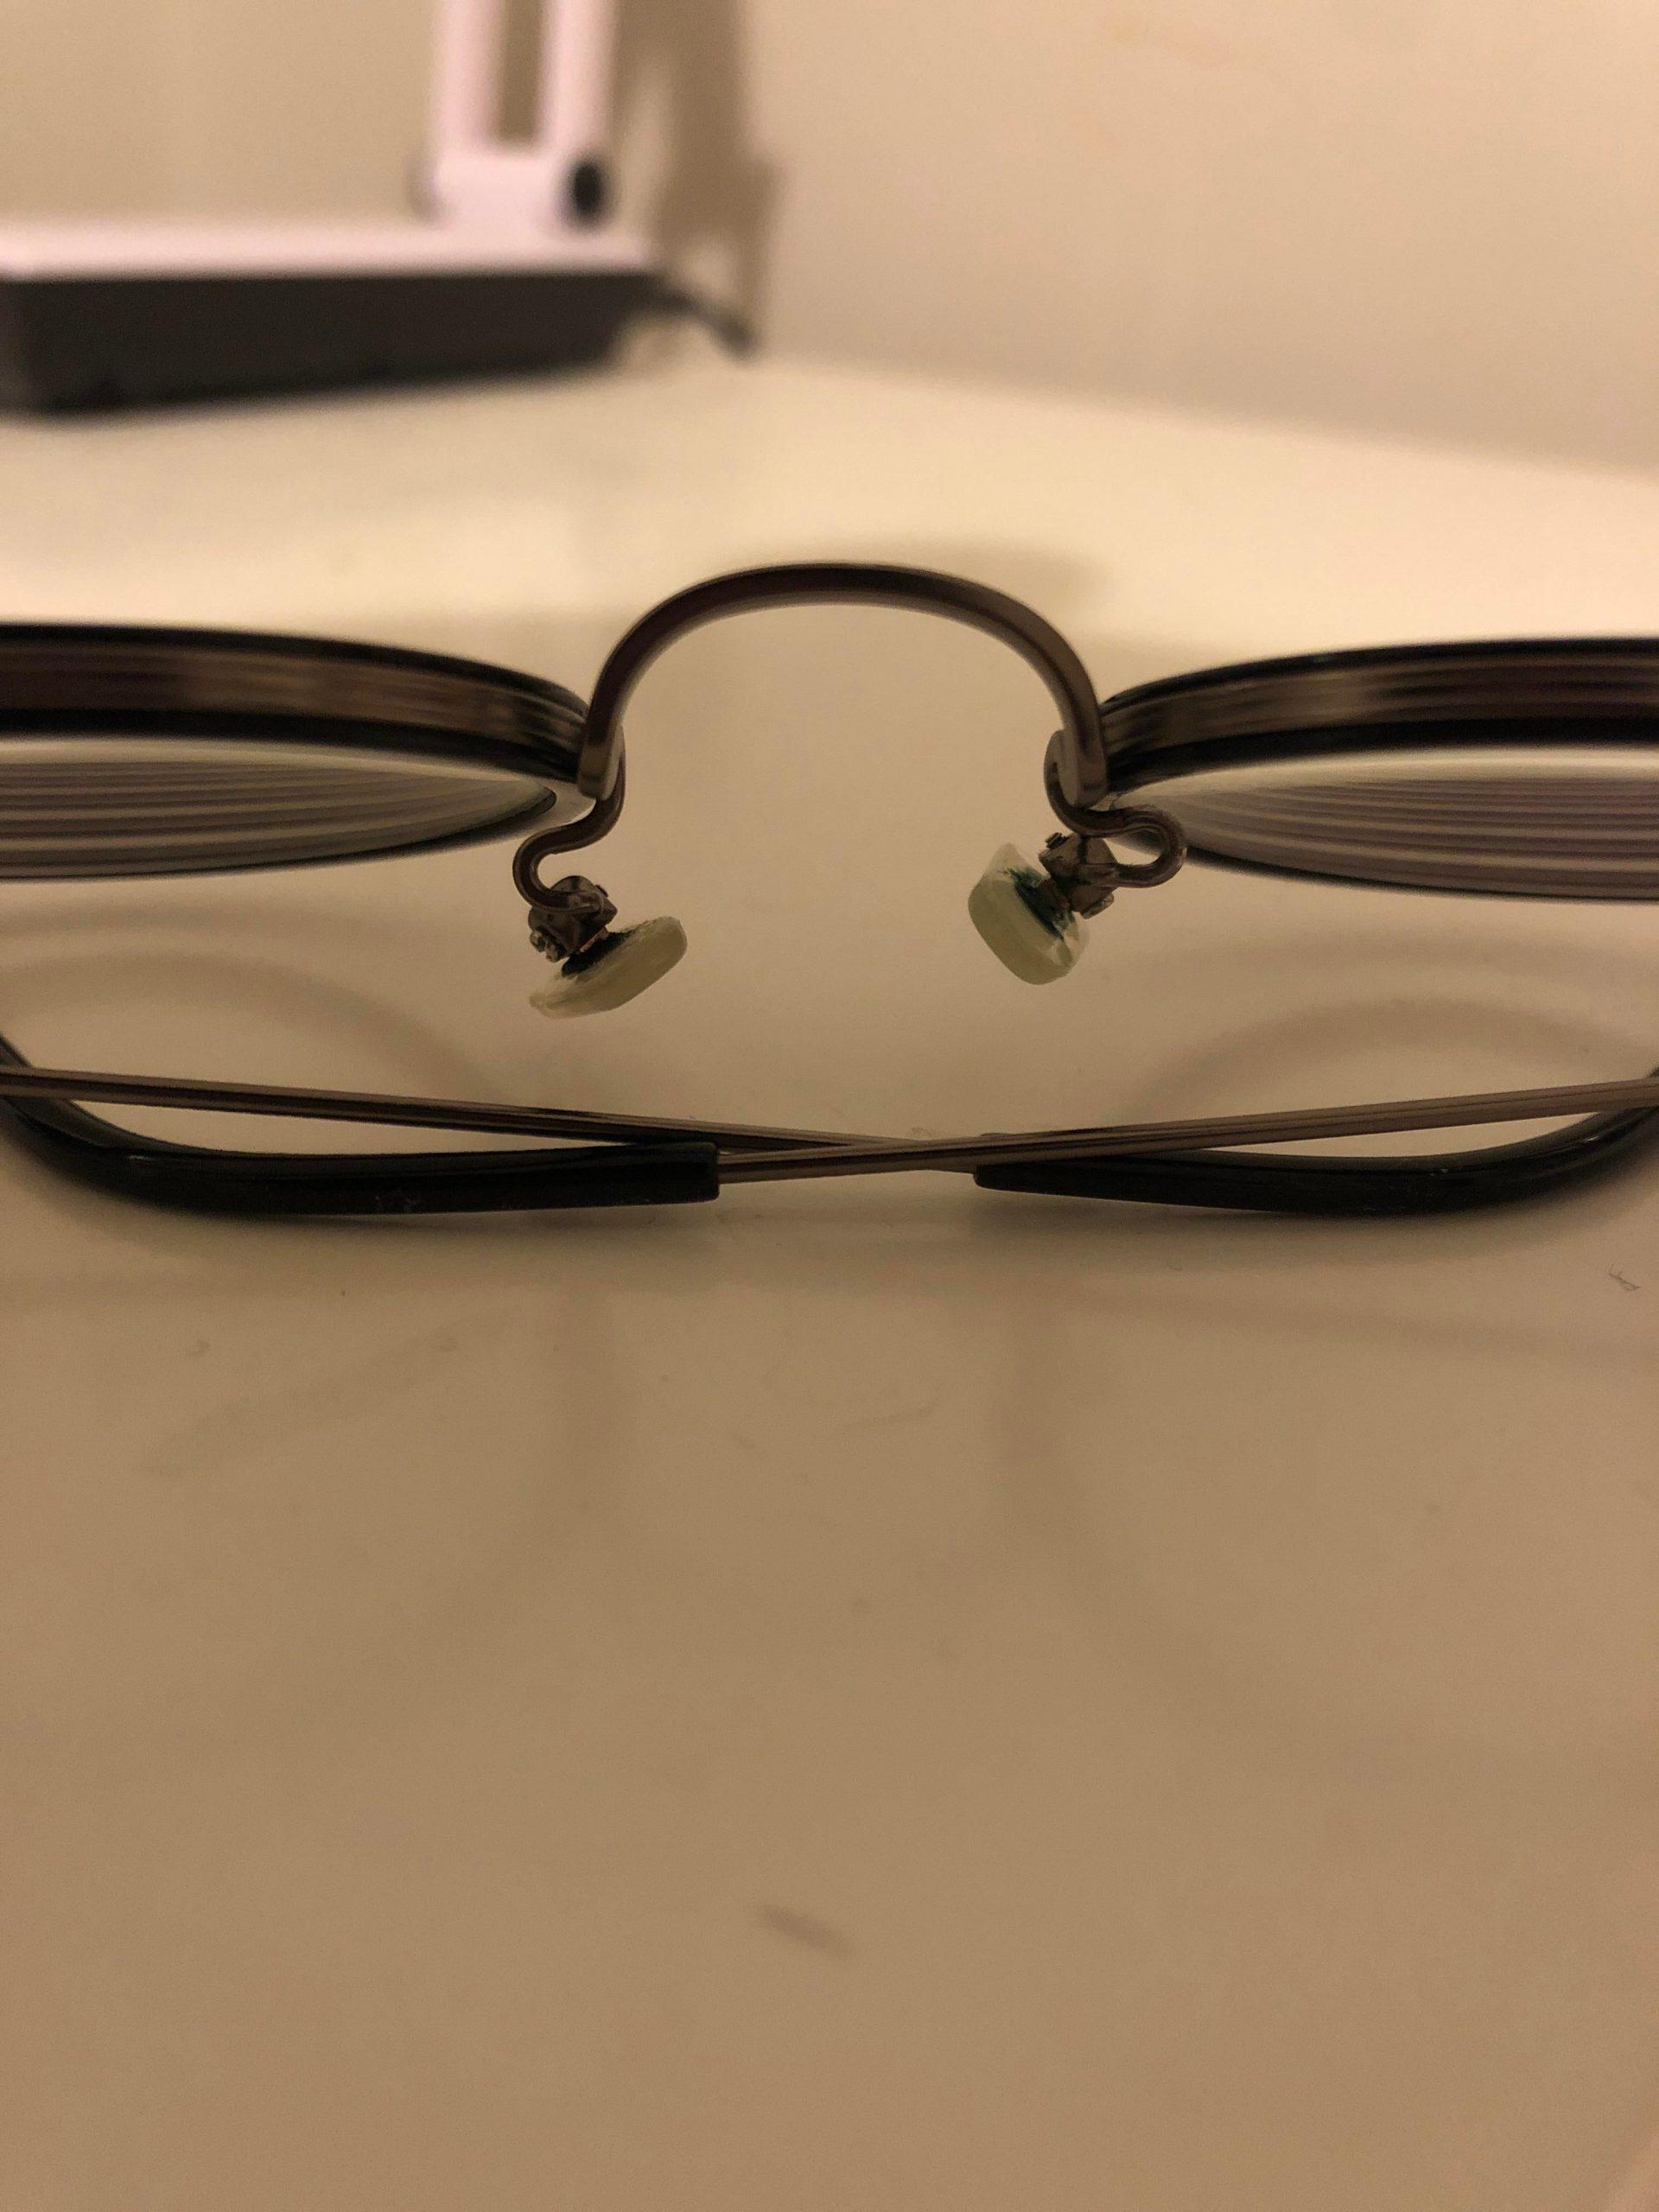 lezksdnsy1p51 scaled - How do I straighten/fix these nose pad arms on my glasses? - home, hobbies